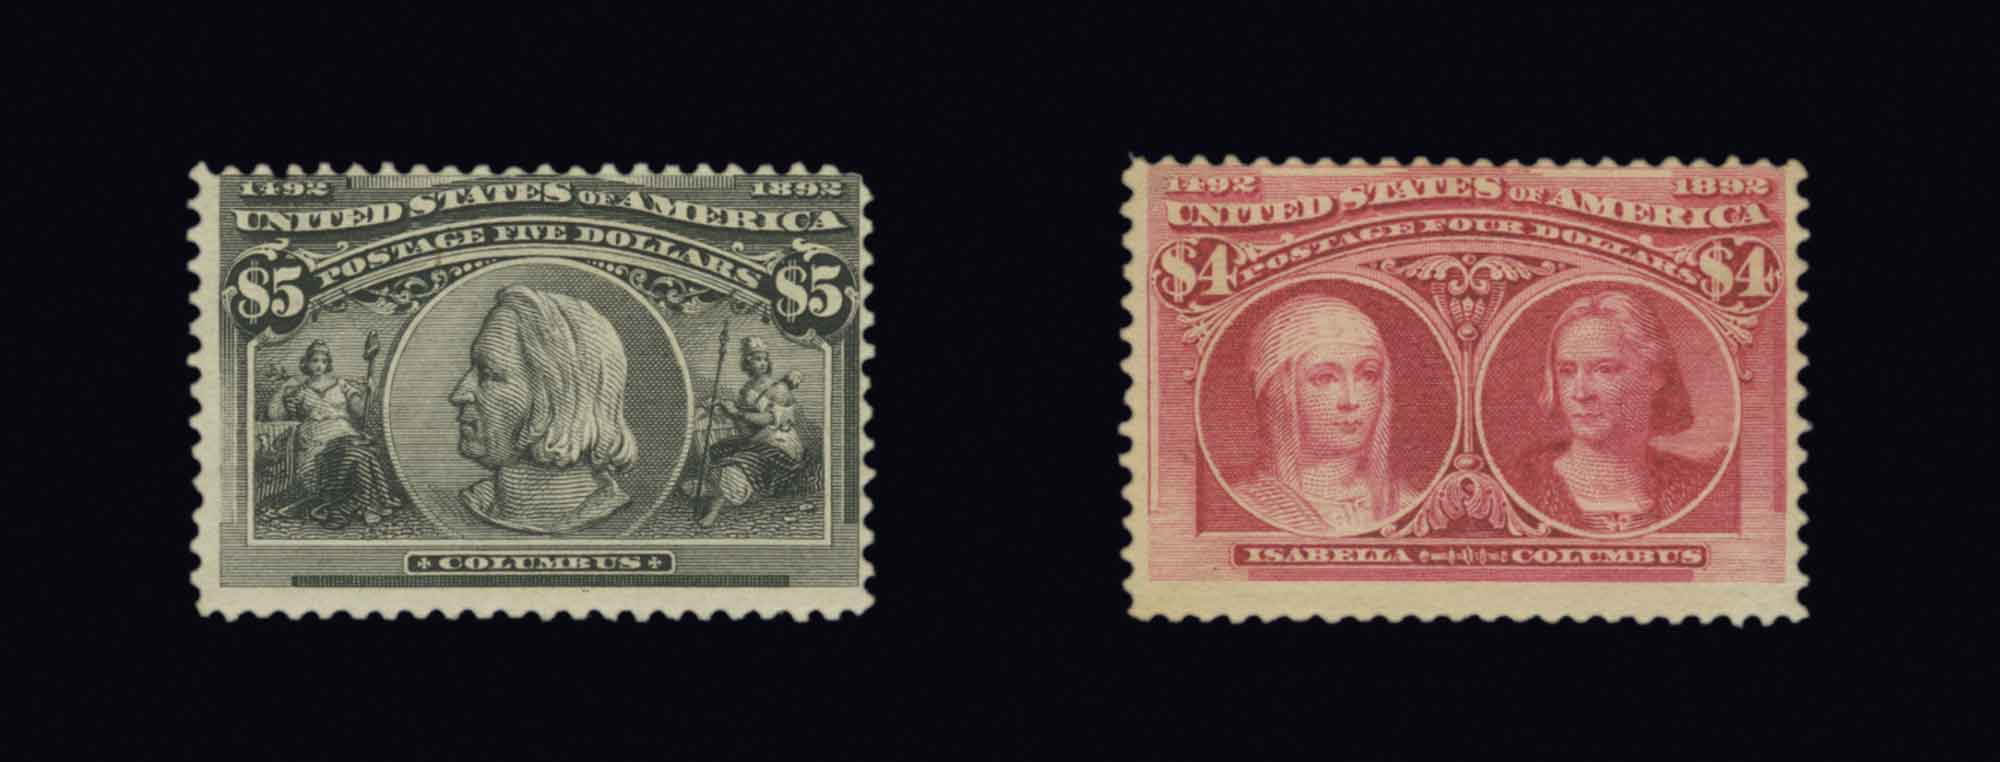 Lot image - United States 1893 Columbian One Cent to Five Dollars